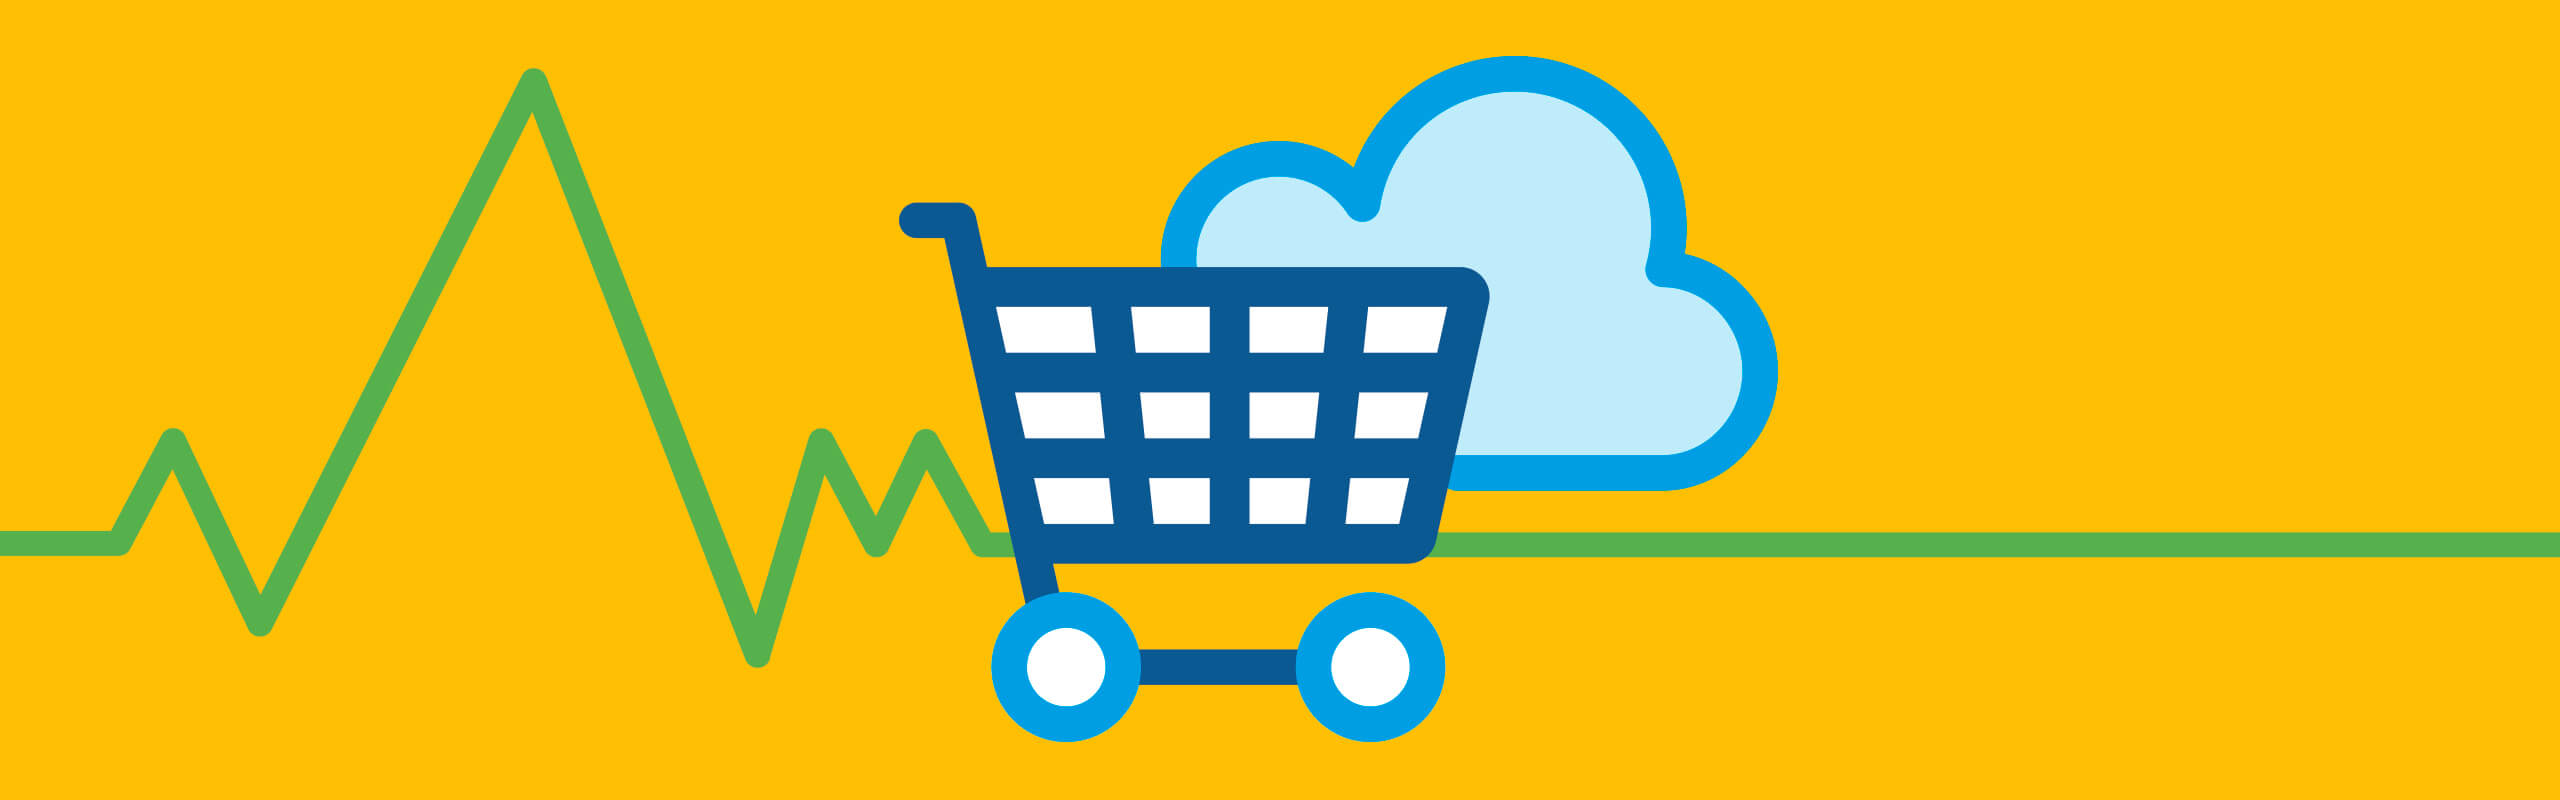 E-commerce Scalability Header Image